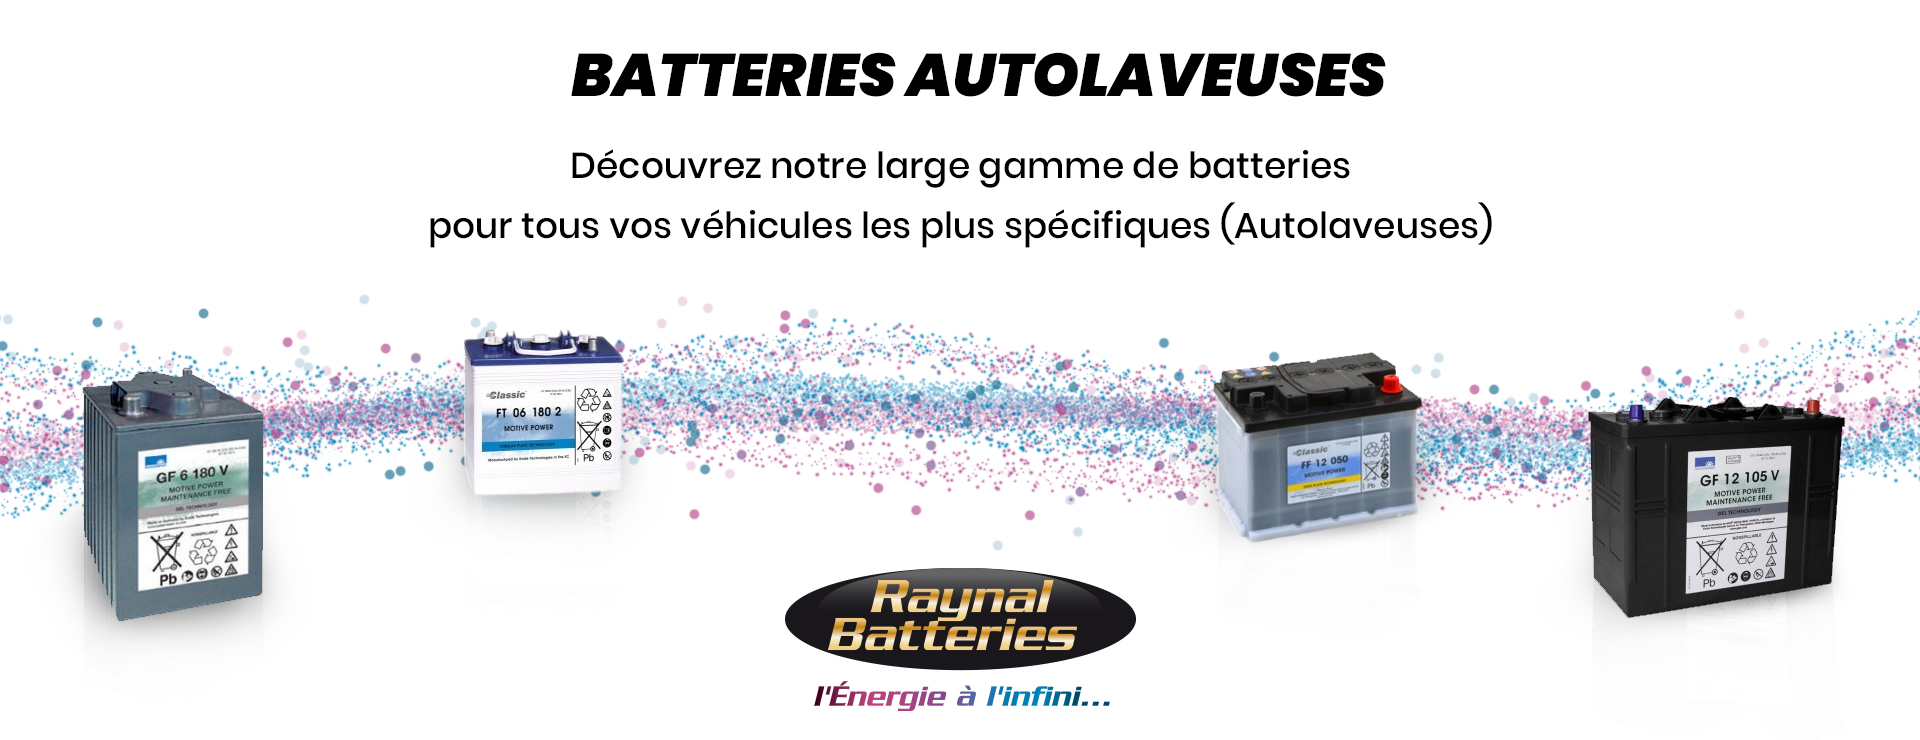 Batteries autolaveuses